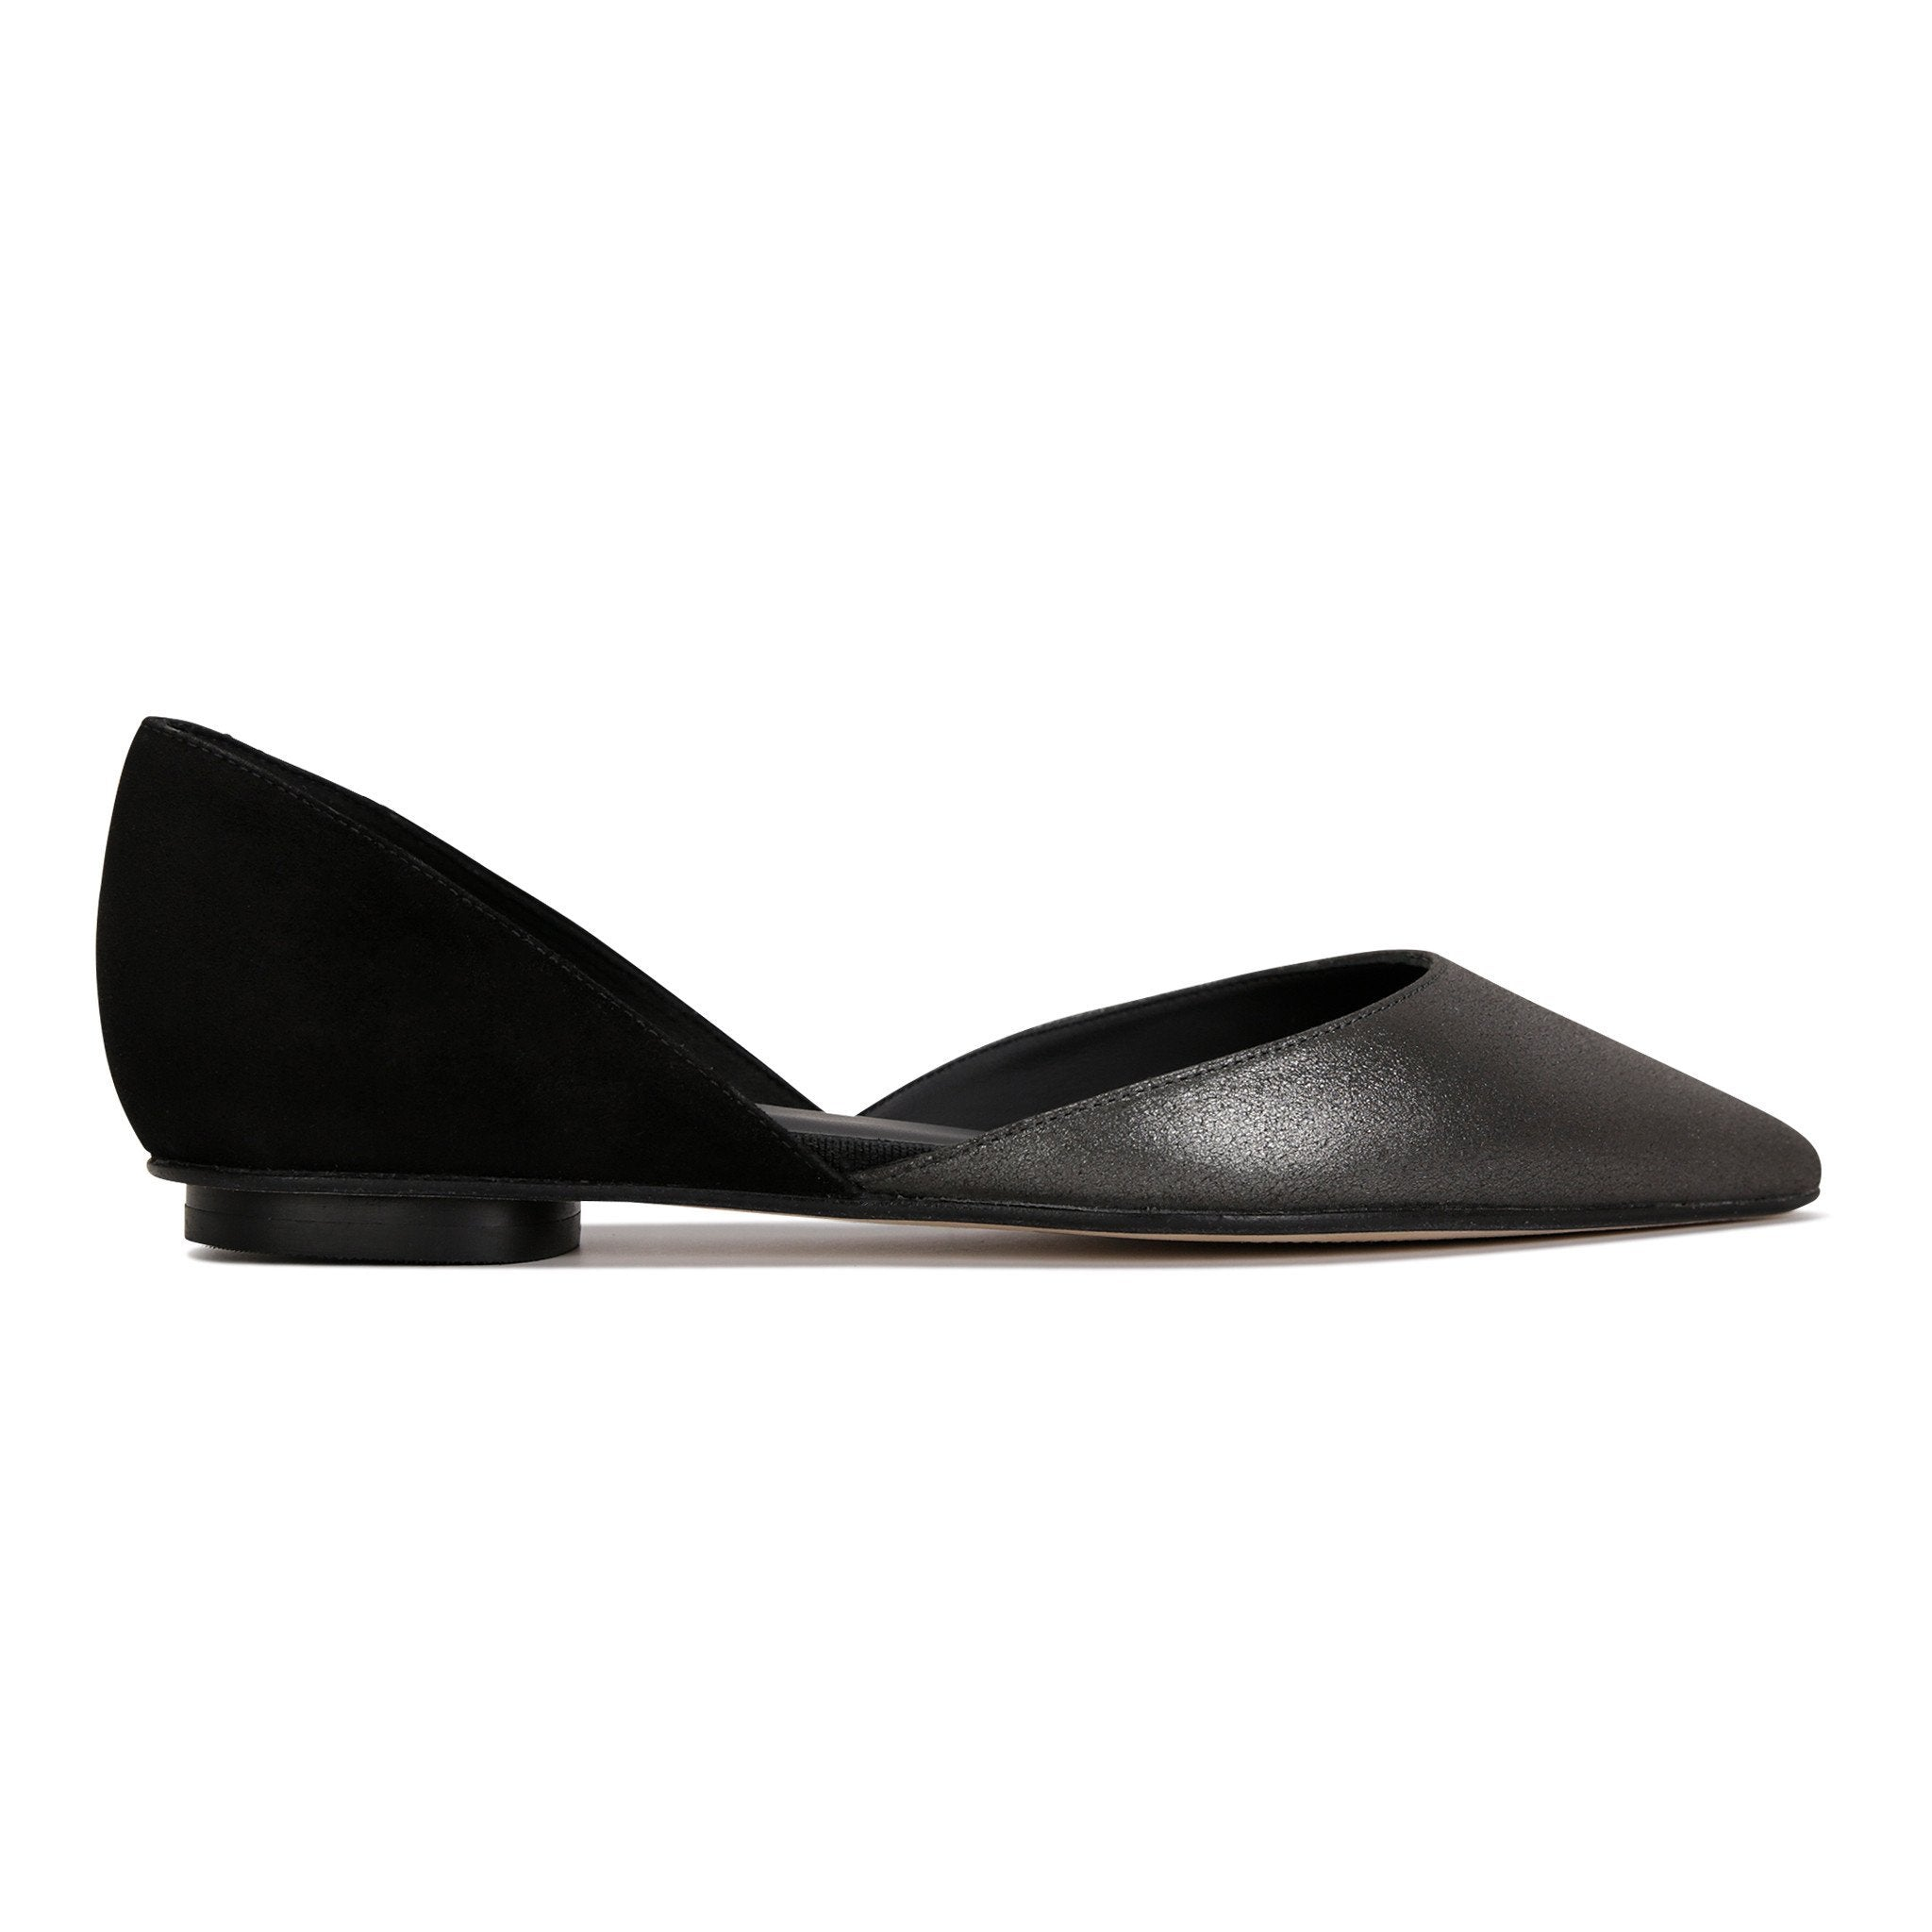 PONZA - Burma Anthracite + Velukid Nero, VIAJIYU - Women's Hand Made Sustainable Luxury Shoes. Made in Italy. Made to Order.